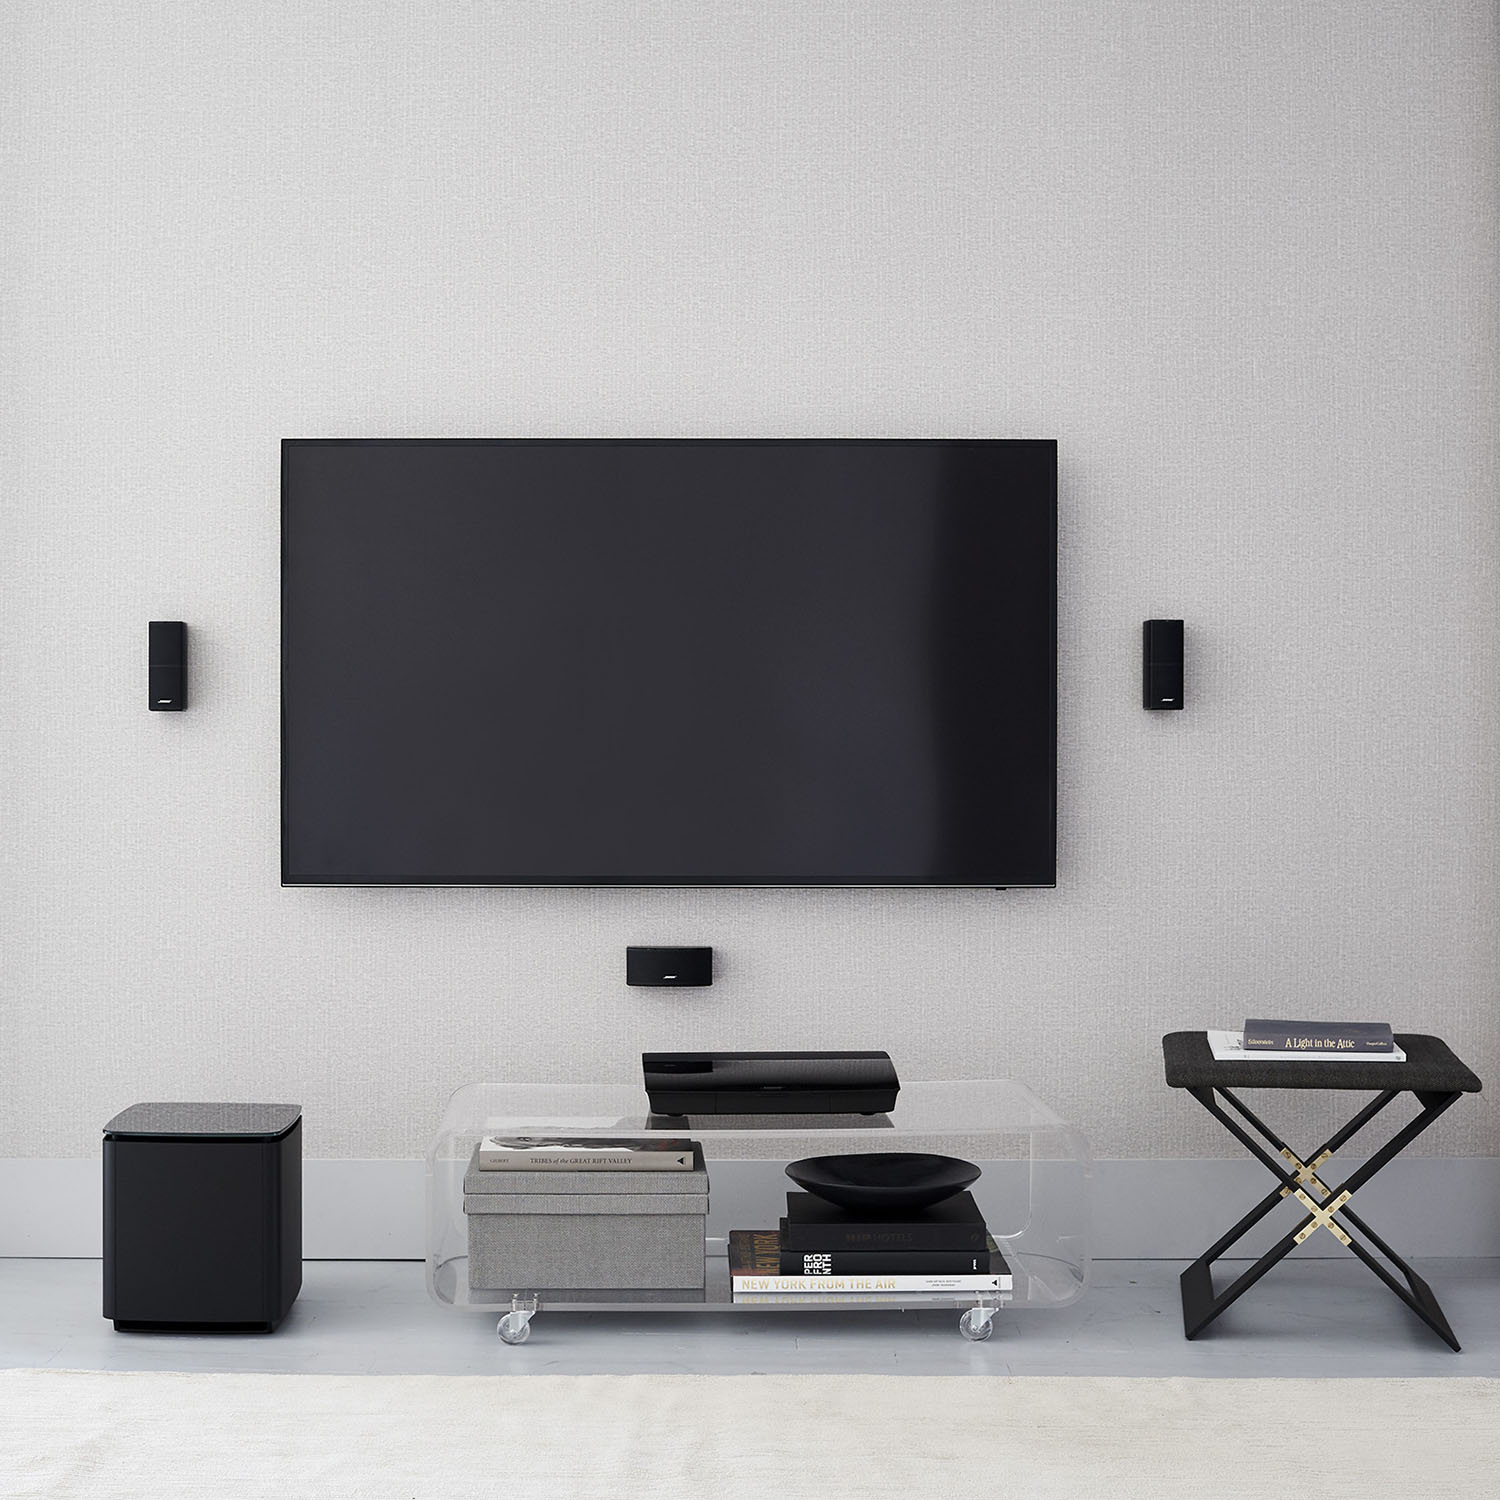 bose lifestyle 600 home entertainment system audio video solutions. Black Bedroom Furniture Sets. Home Design Ideas